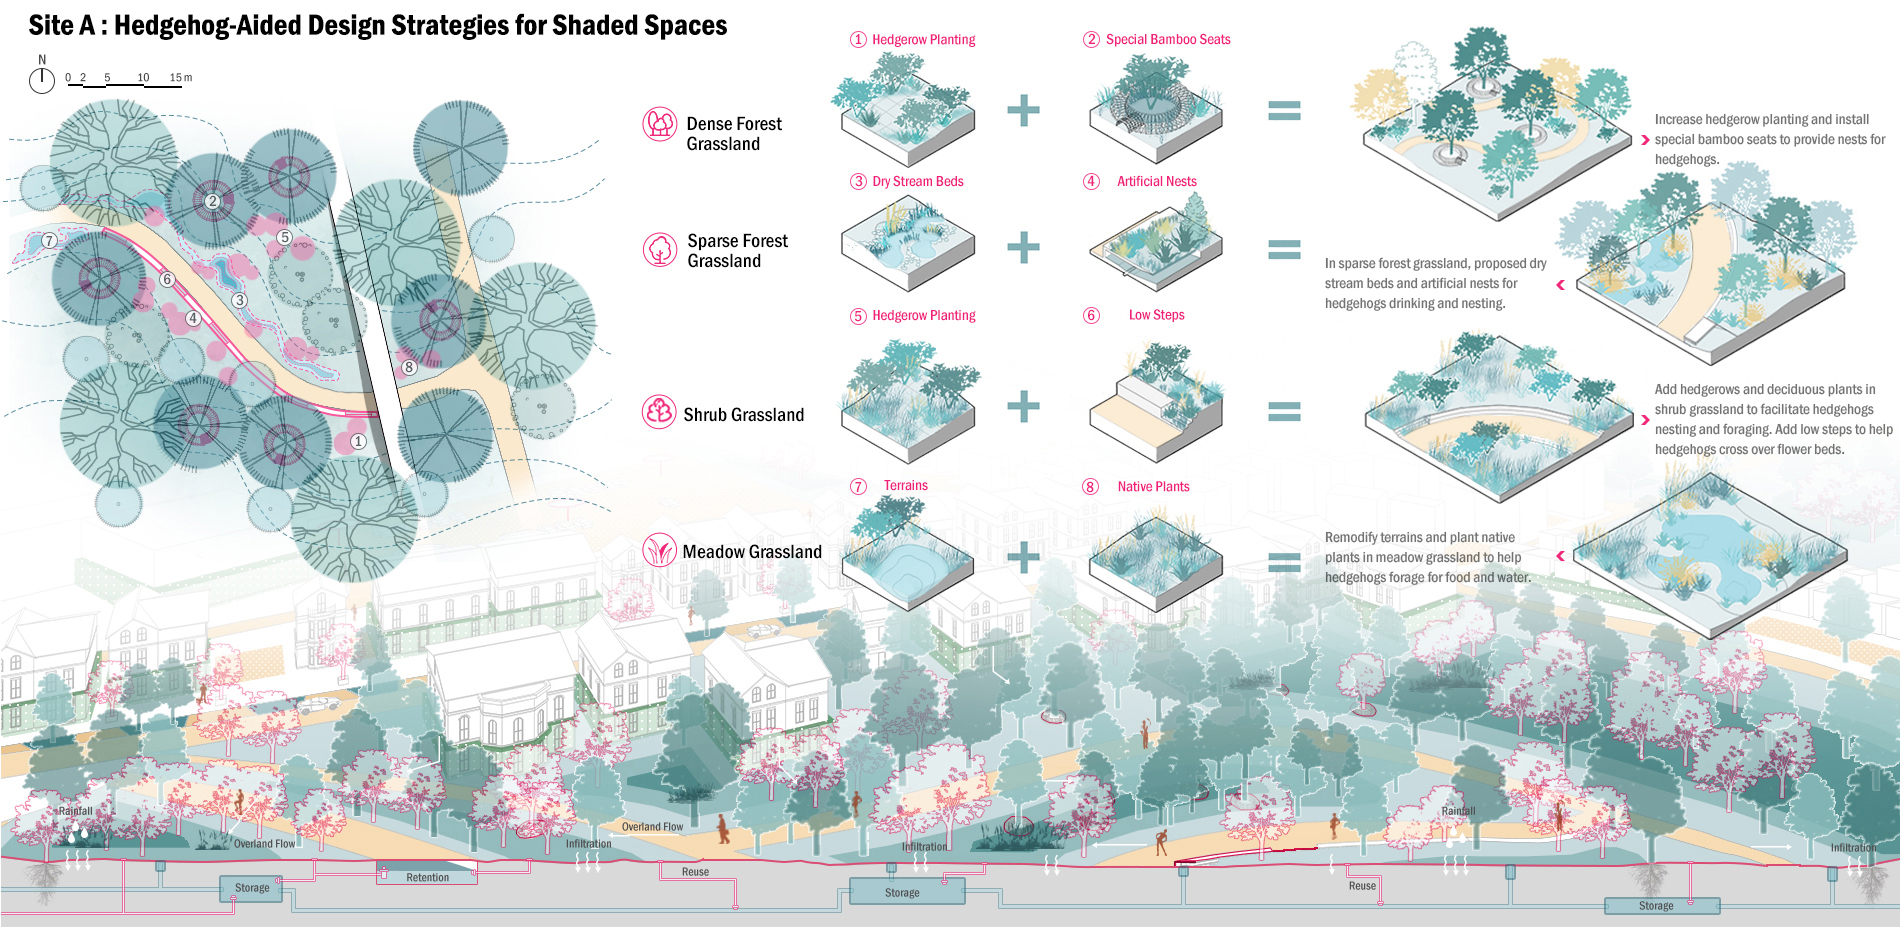 Site A: Hedgehog-Aided Design Strategies for Shaded Spaces